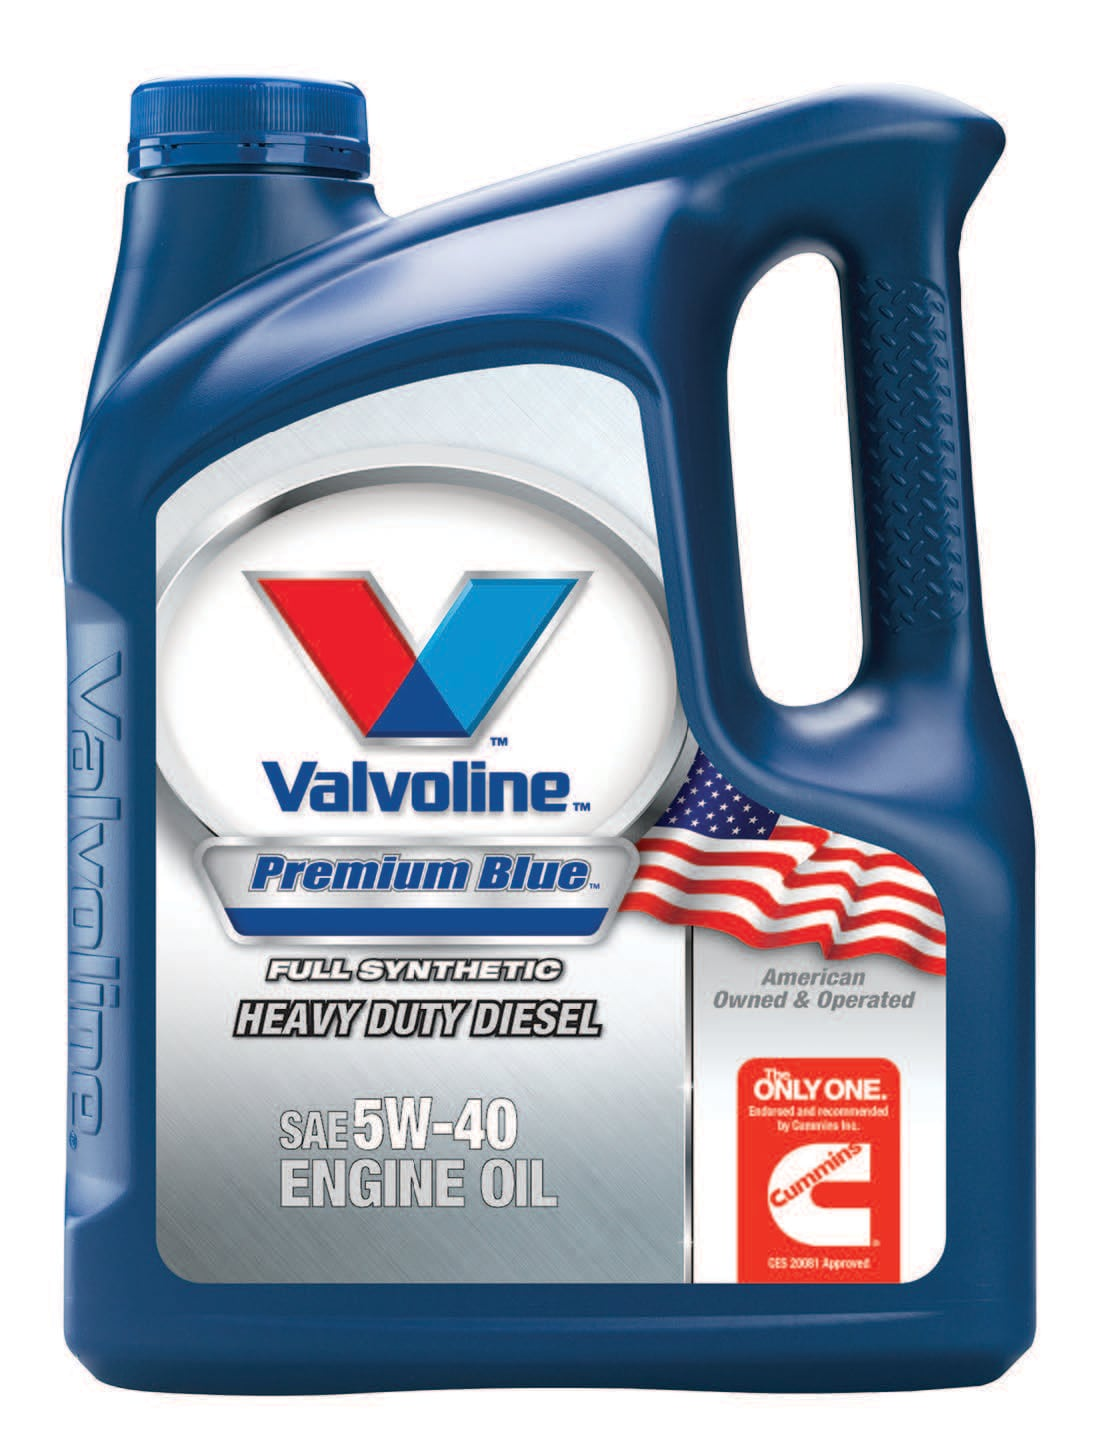 1 U.S. Gallon of Valvoline Premium Blue Extreme Heavy Duty Diesel SAE 5W-40 Synthetic Engine Oil